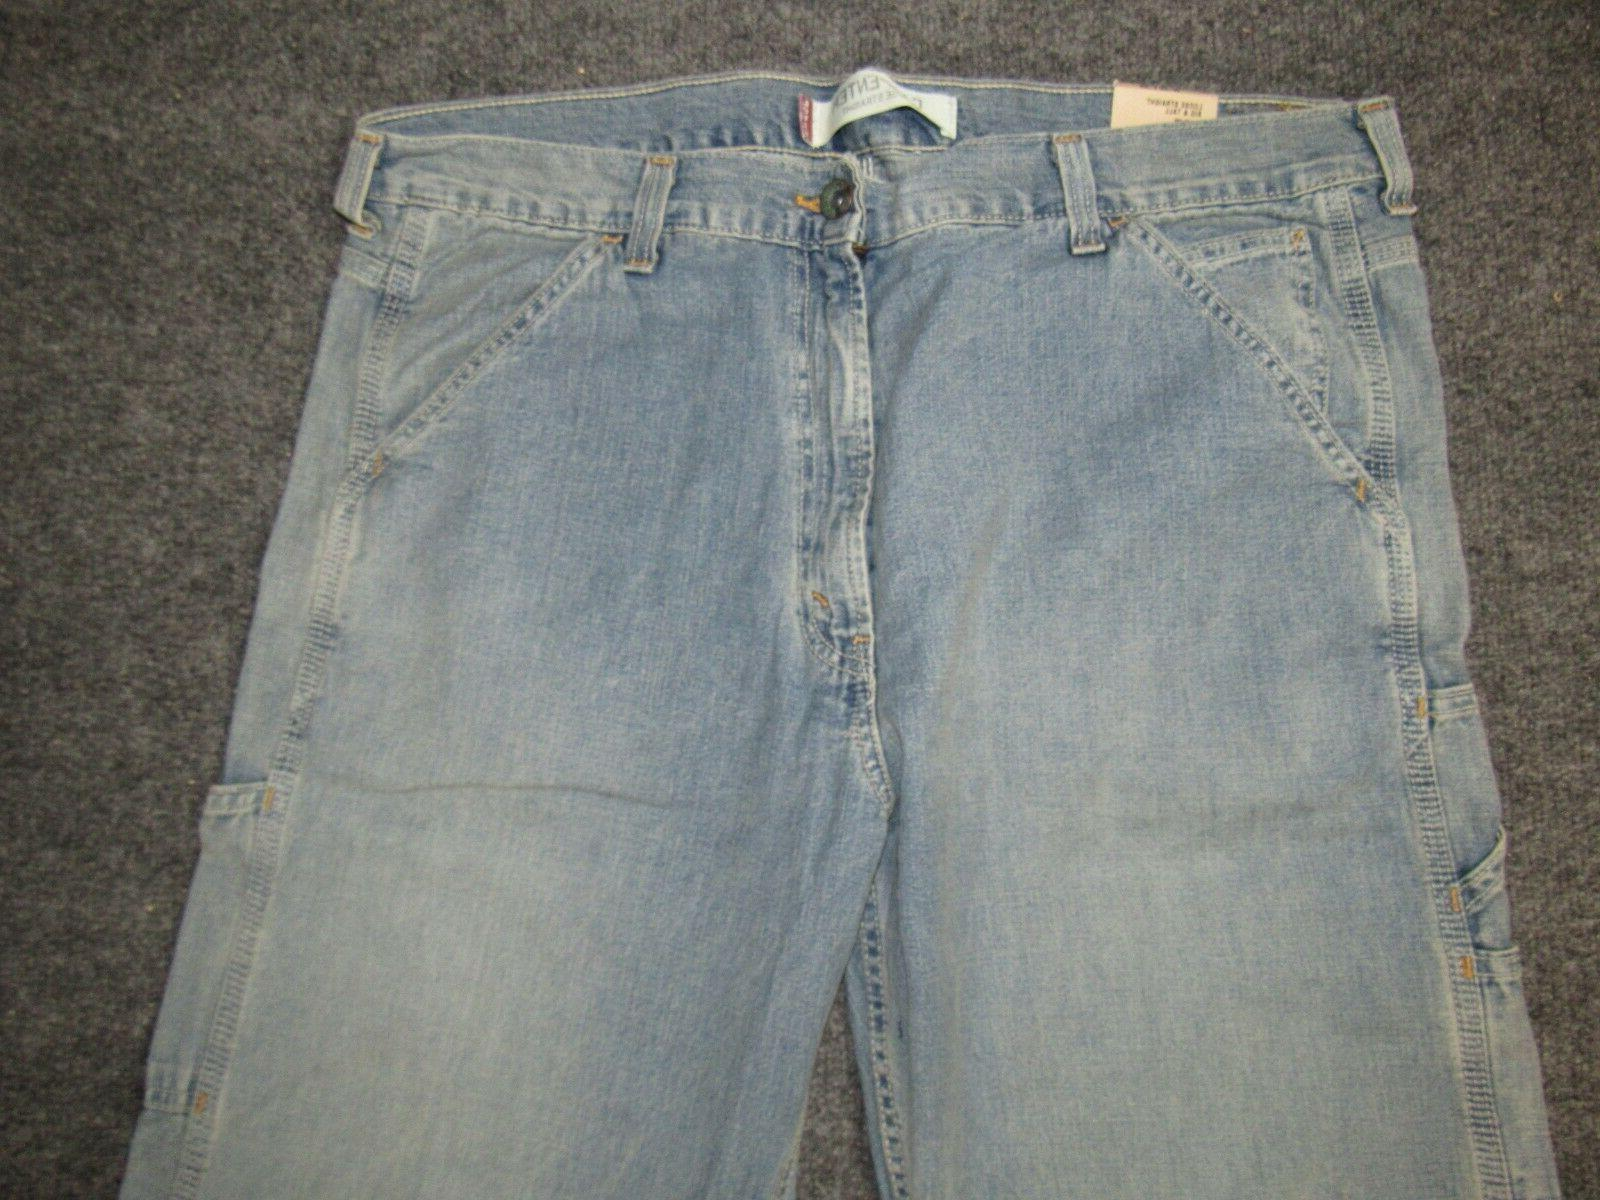 NEW MENS JEANS LOOSE FIT STRAIGHT LEG #1